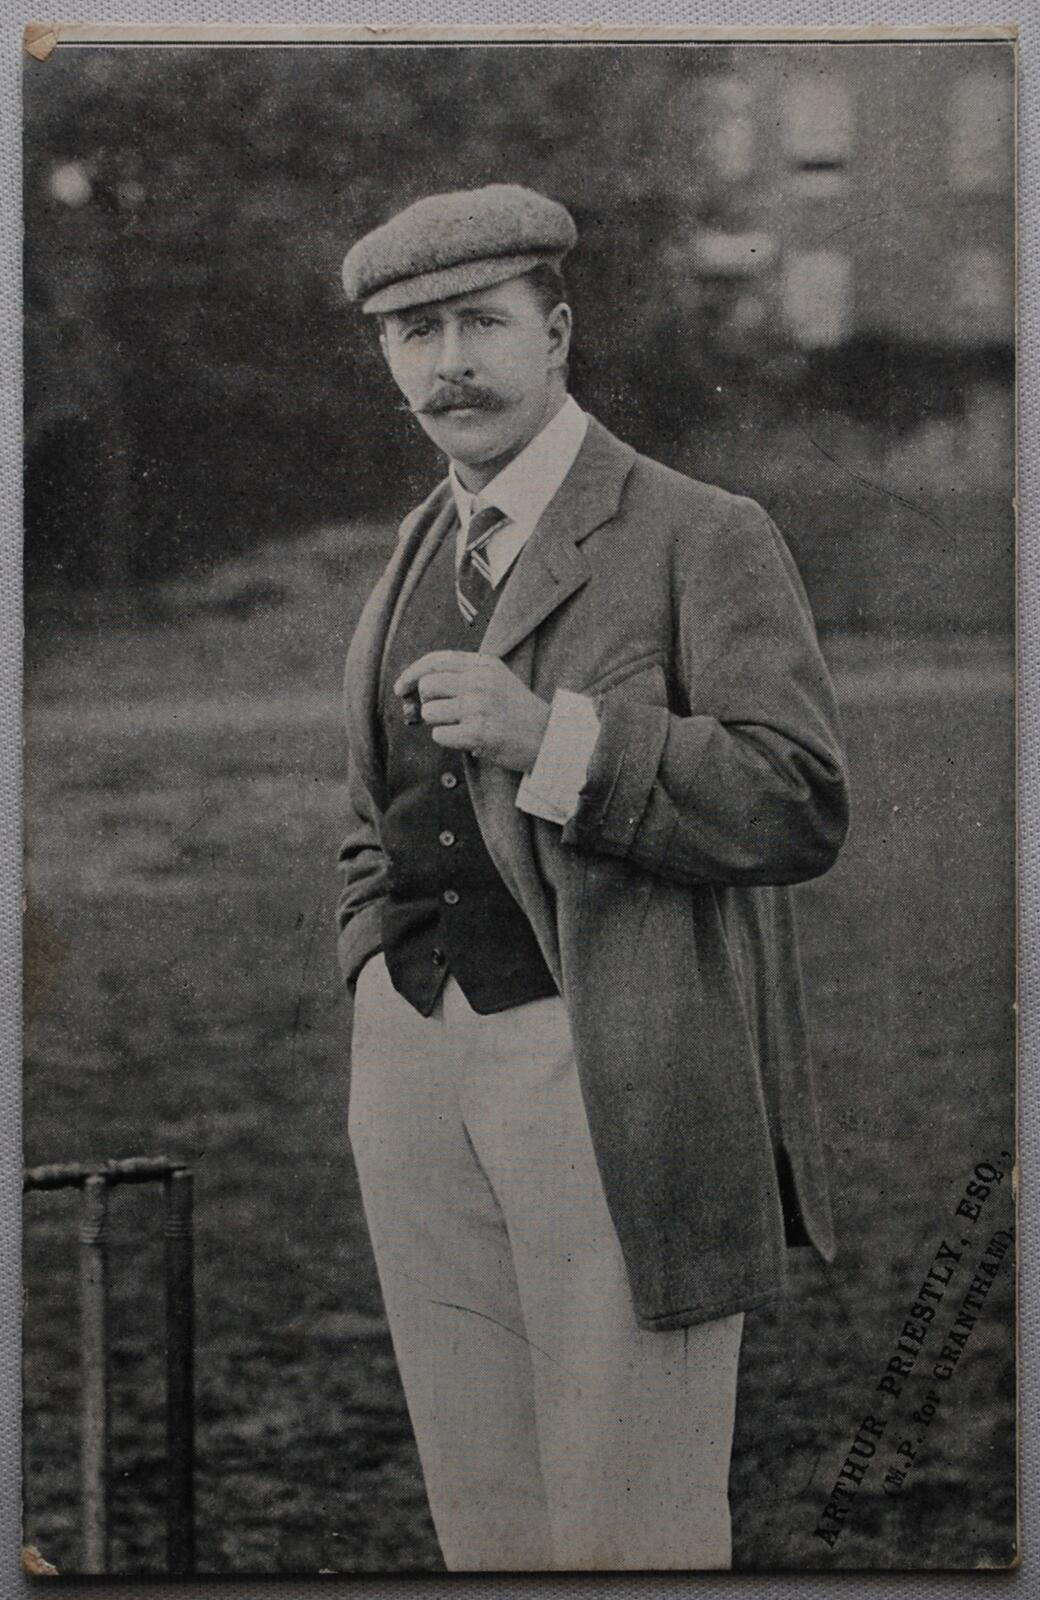 Lot 424 - ?Arthur Priestley. M.P. for Grantham?. Mono printed postcard of Priestley standing at the wicket in